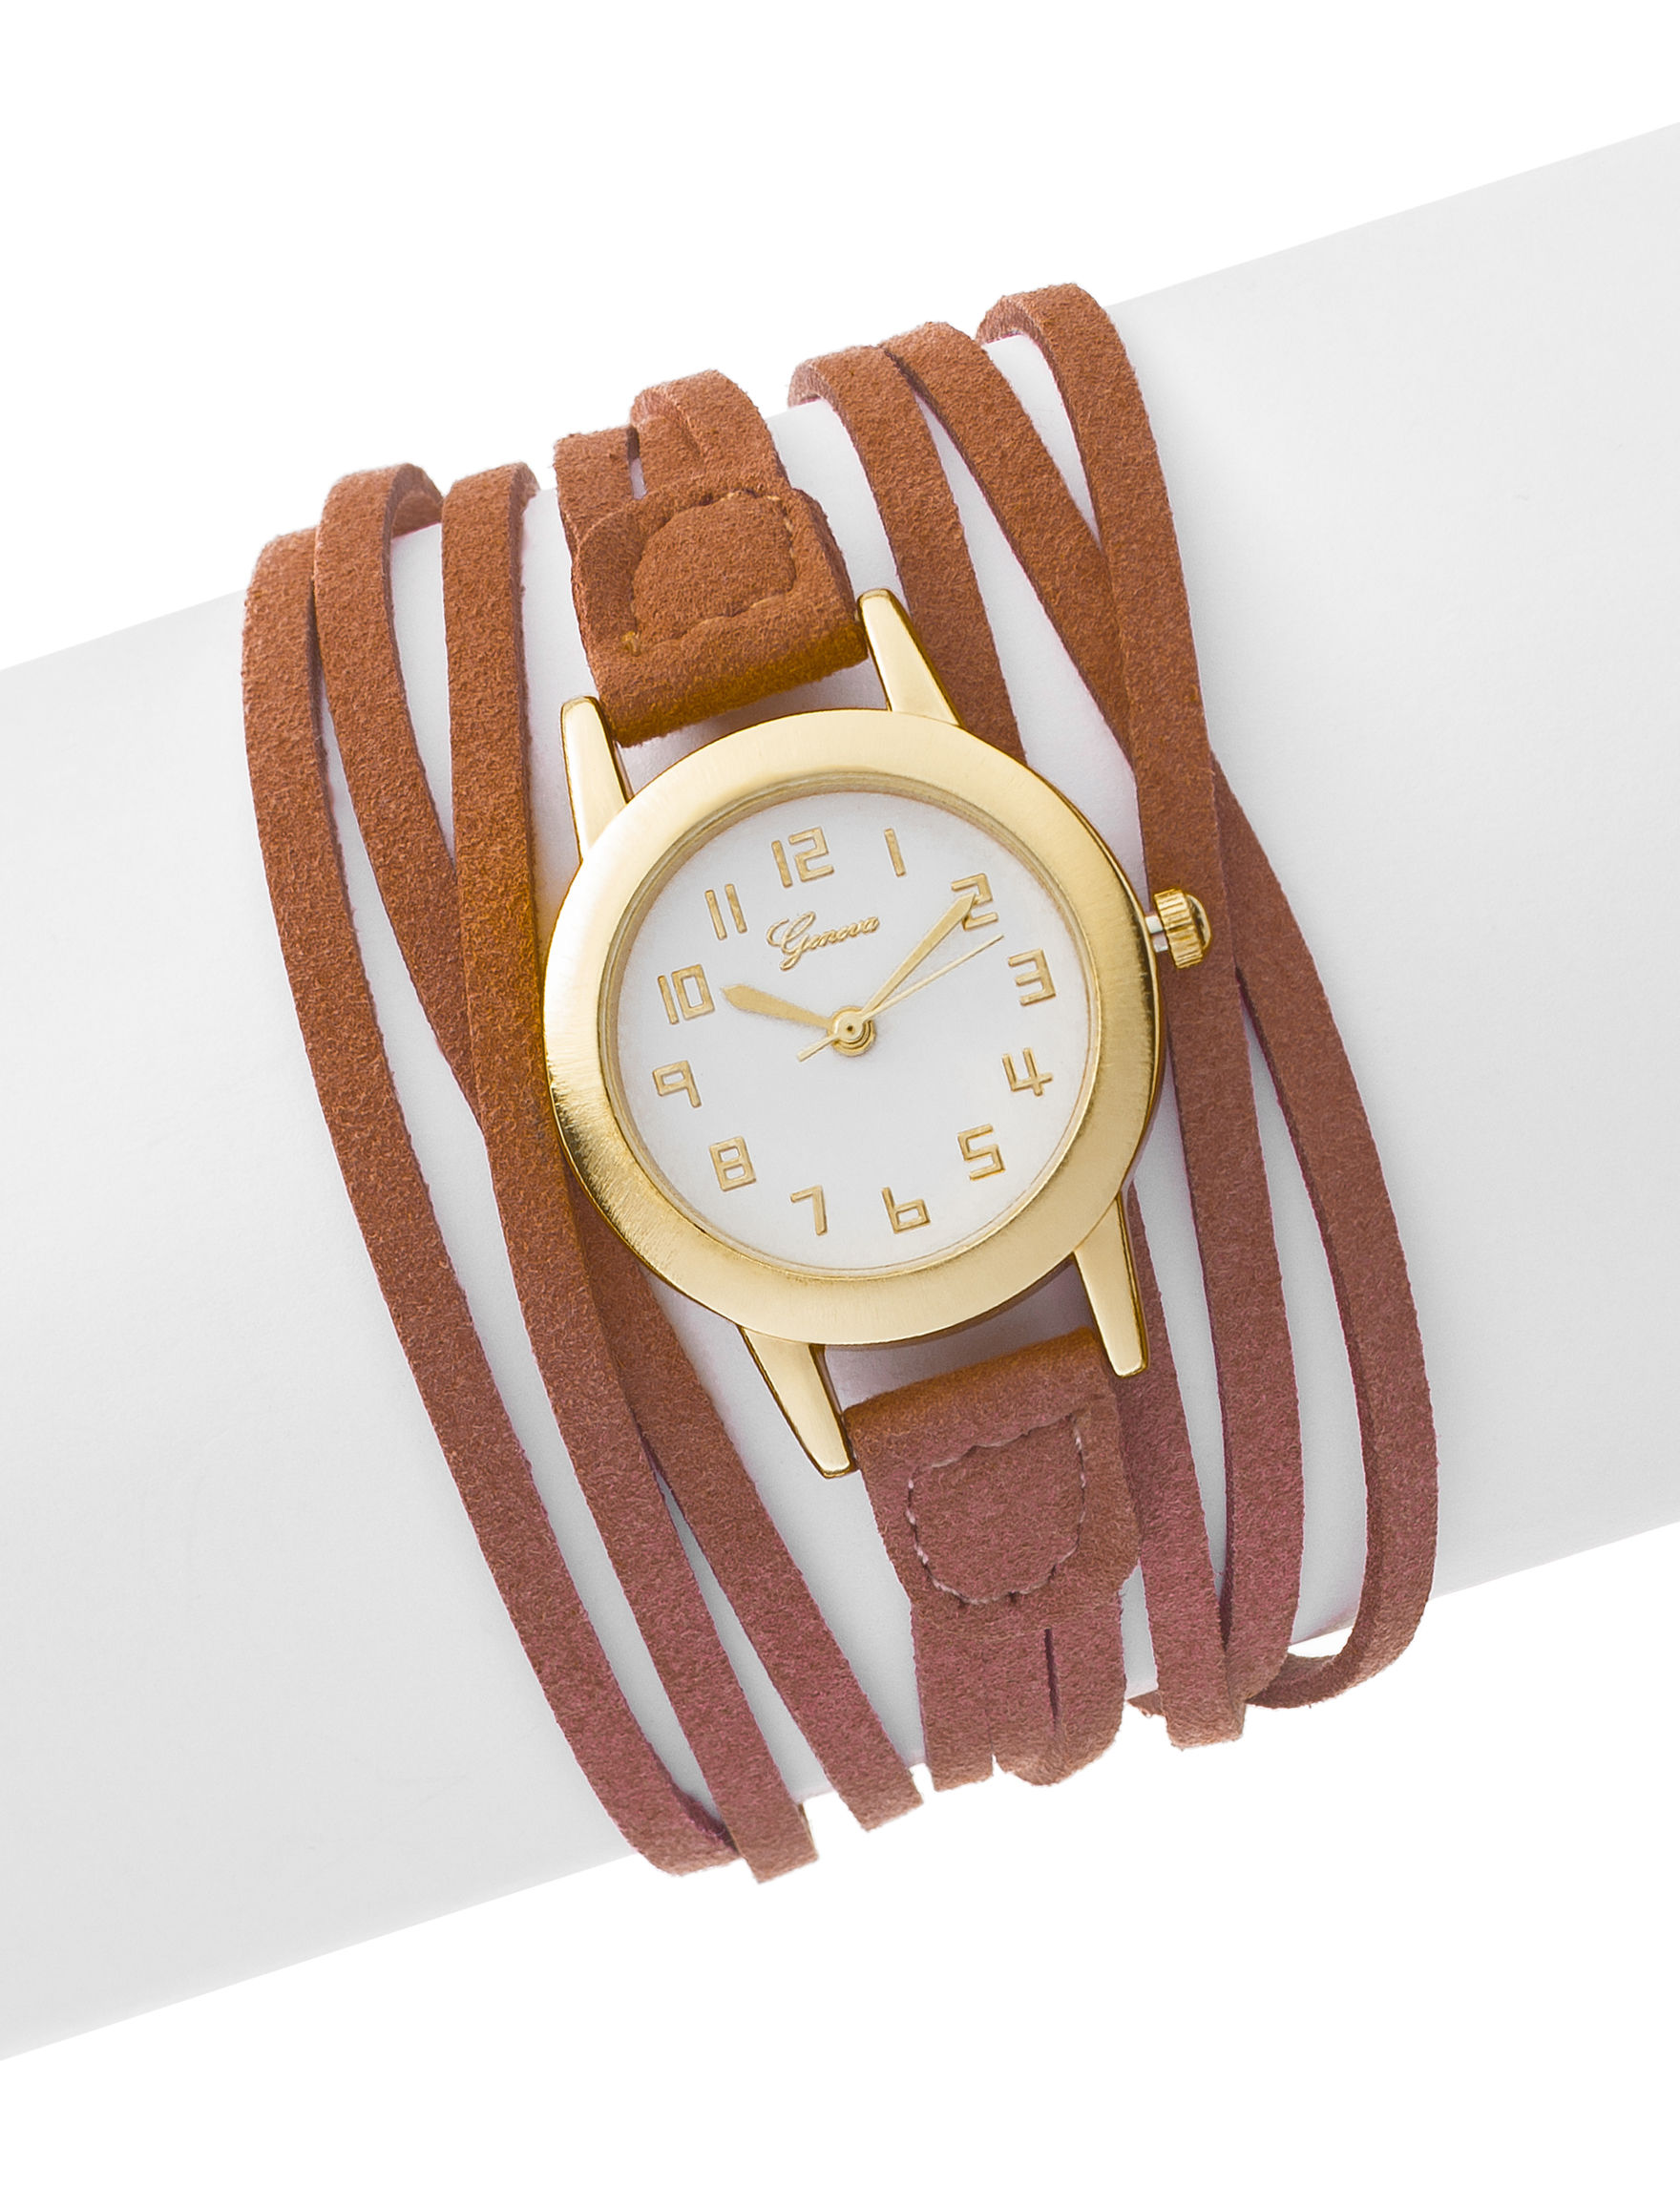 Global Time Tan Fashion Watches